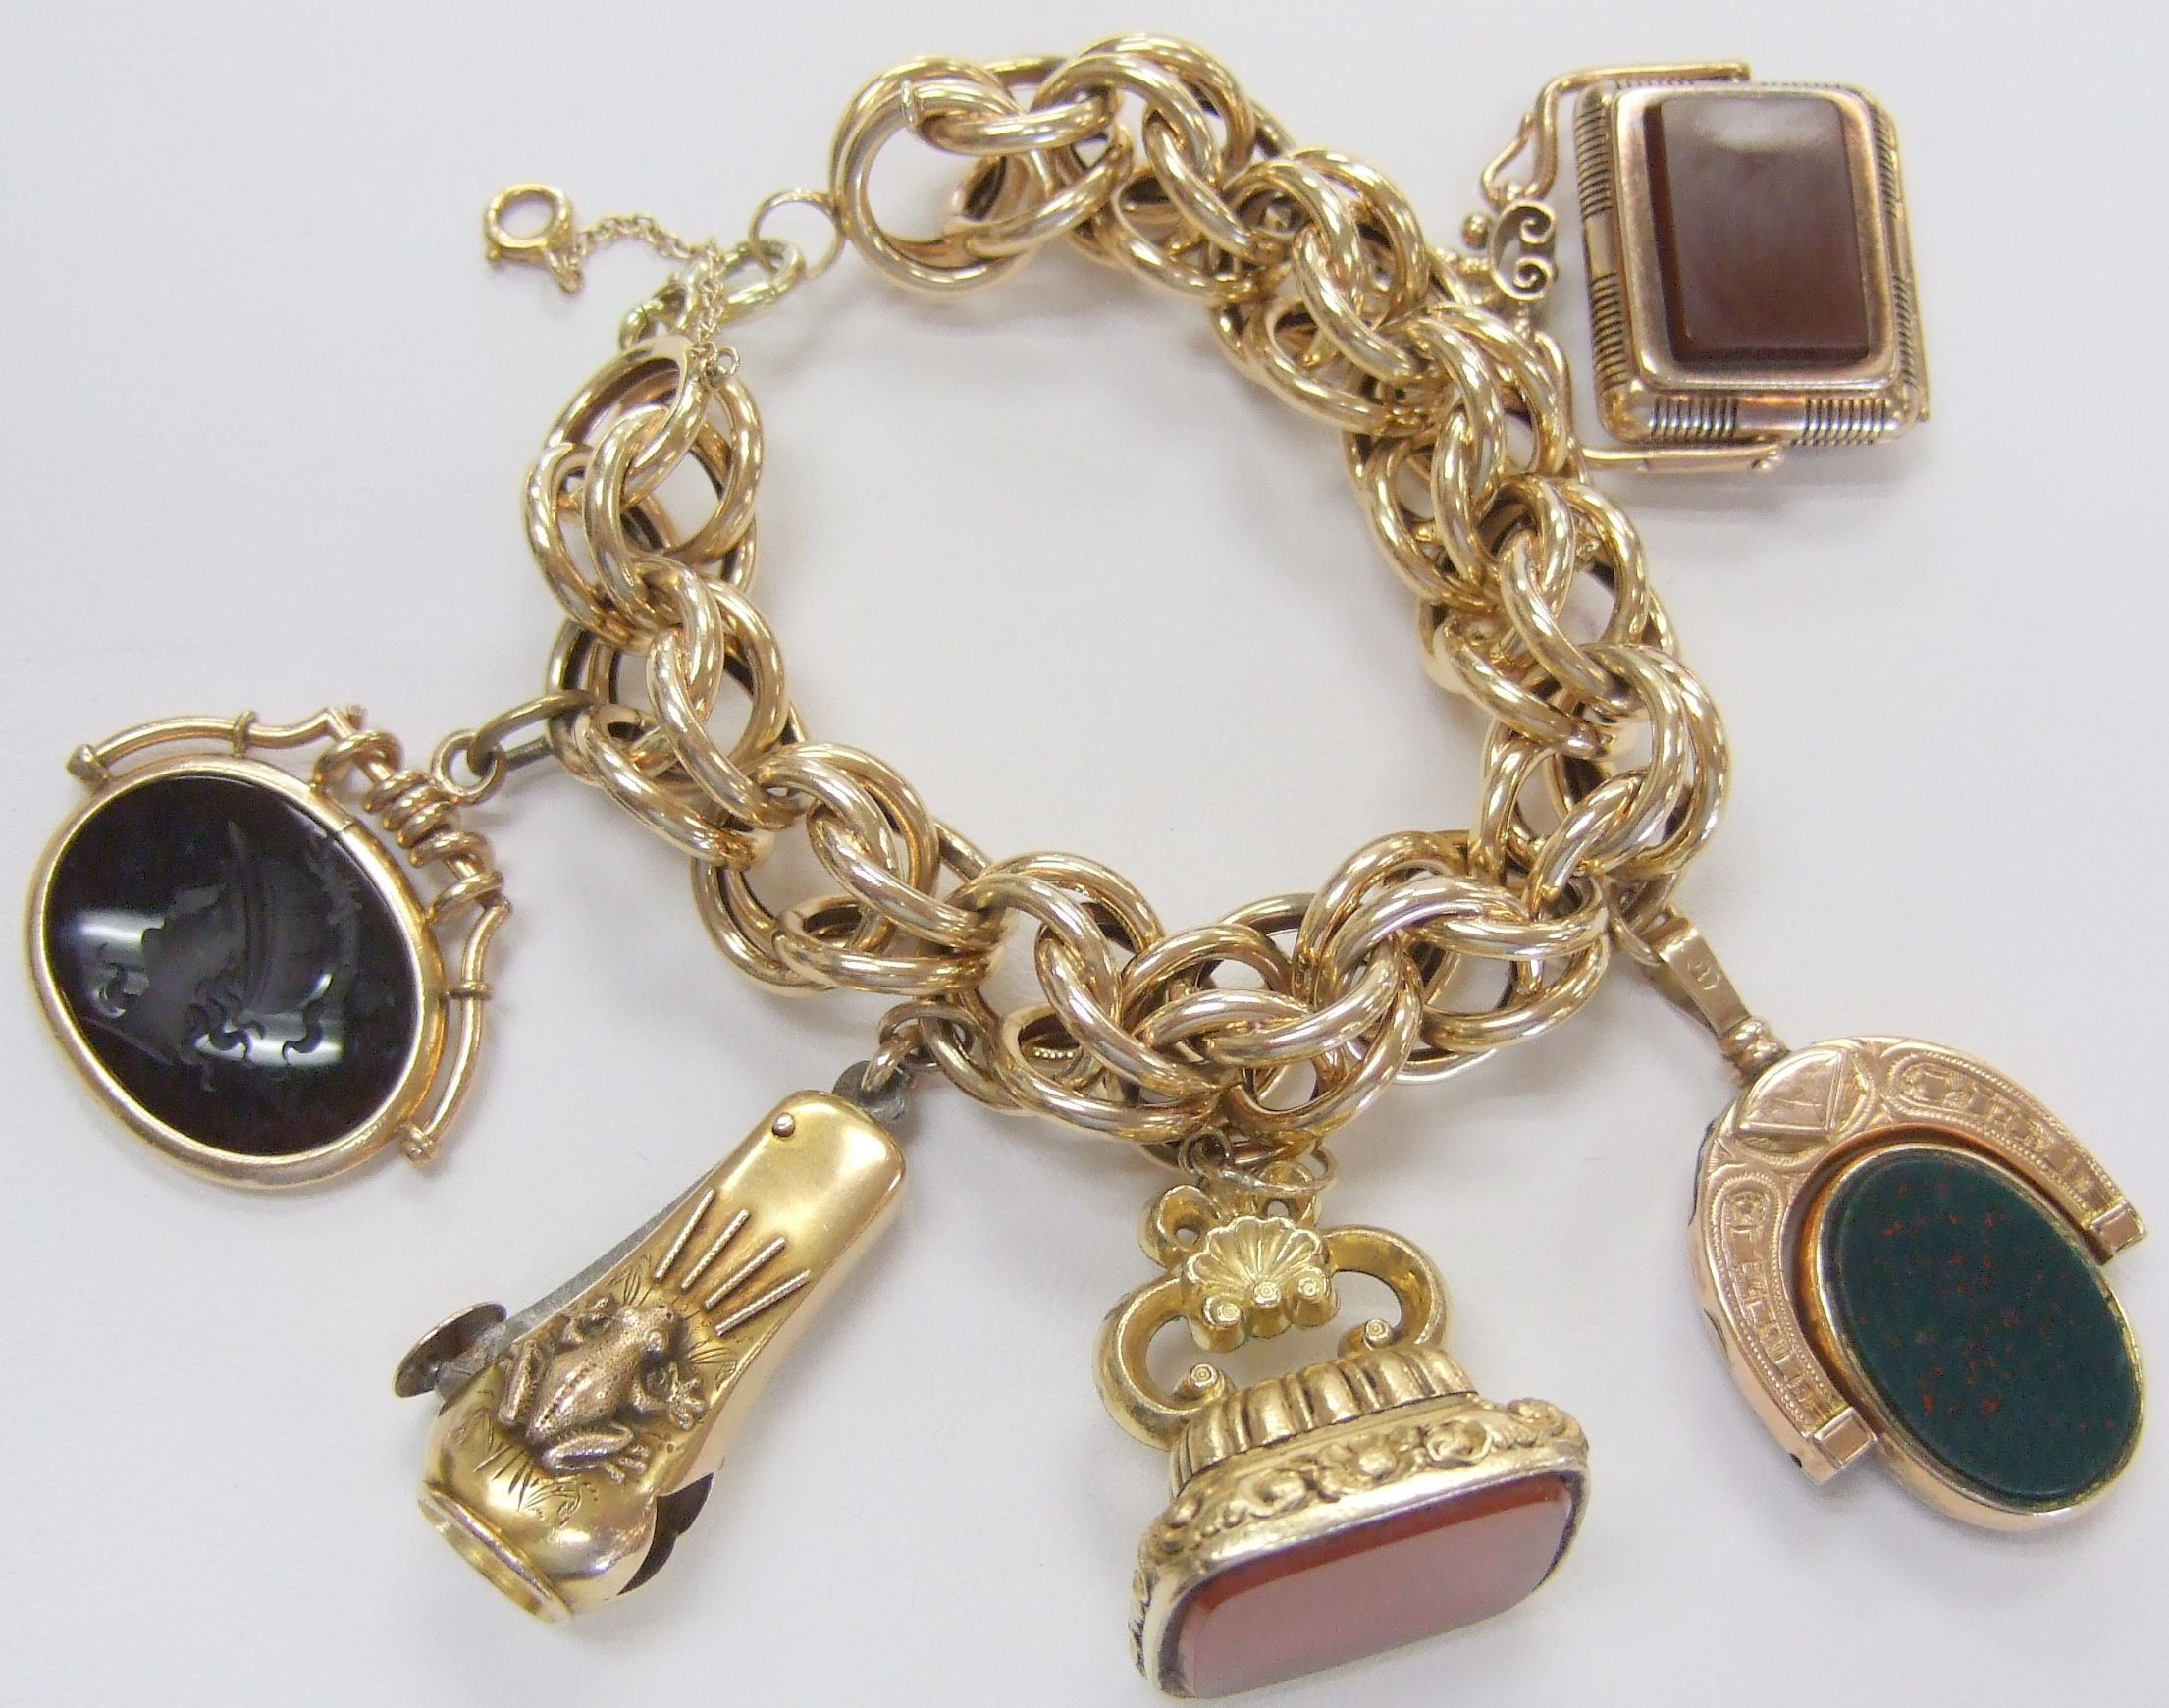 Antique14k Yellow Gold, Charm Bracelet Large Link Charm Bracelet, With 5  Assorted Charms